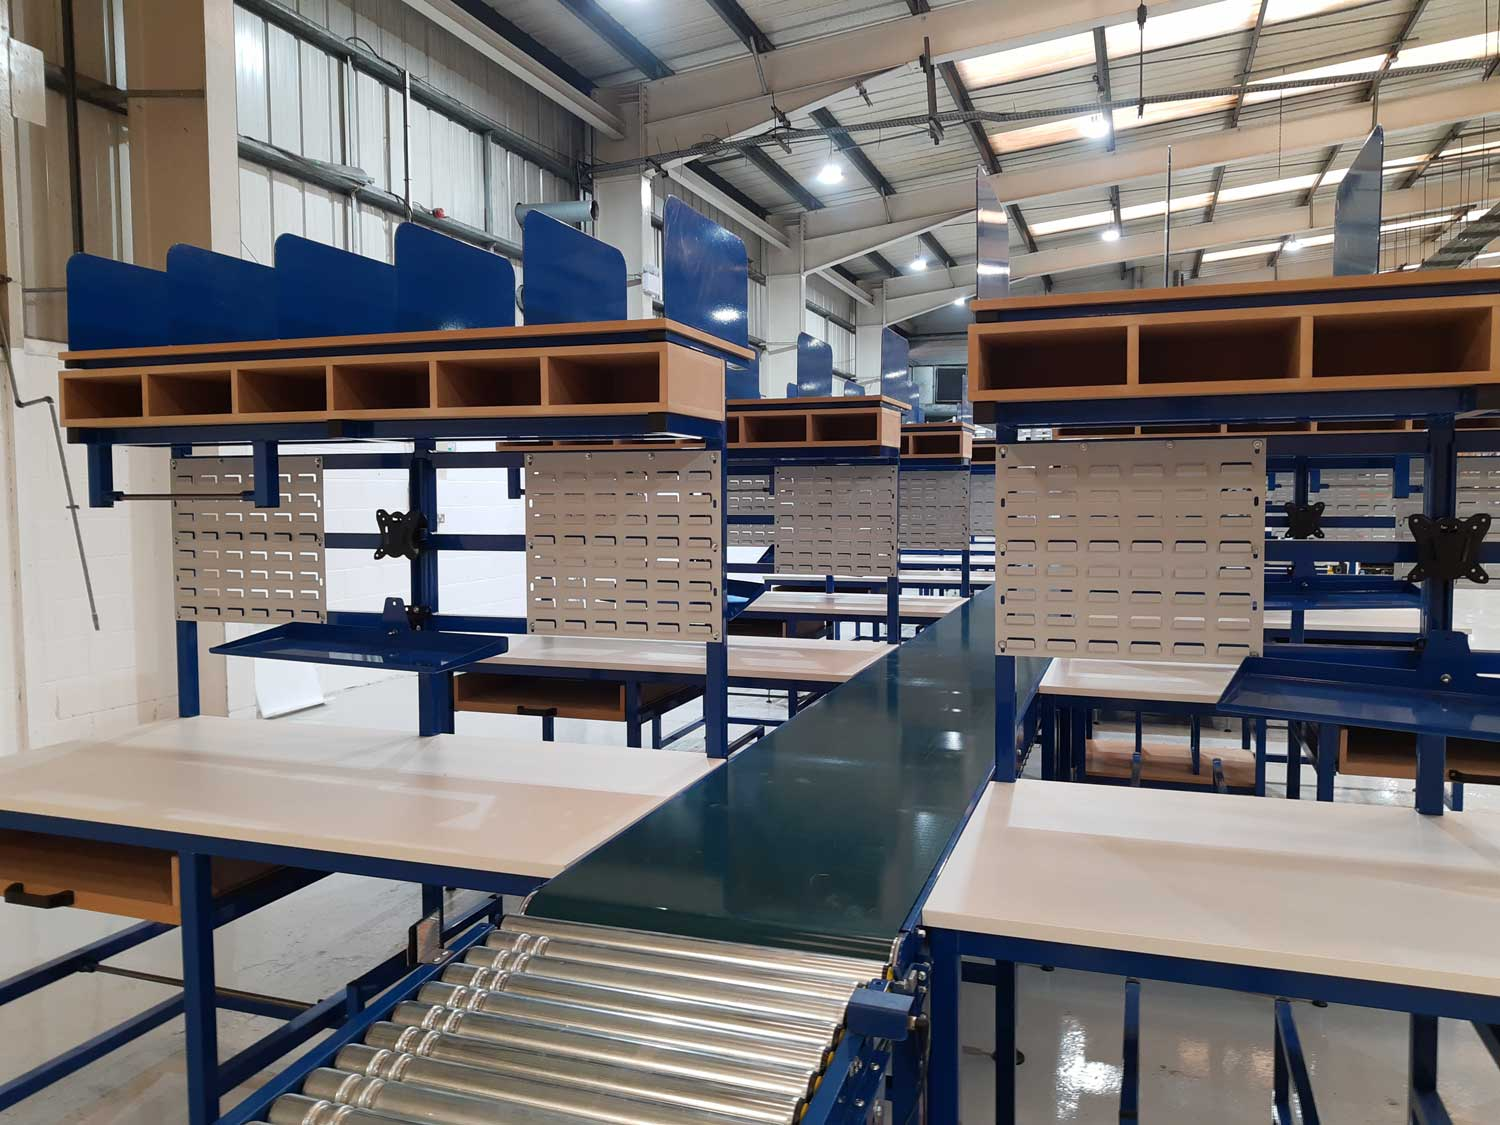 Packing line with benches & conveyors